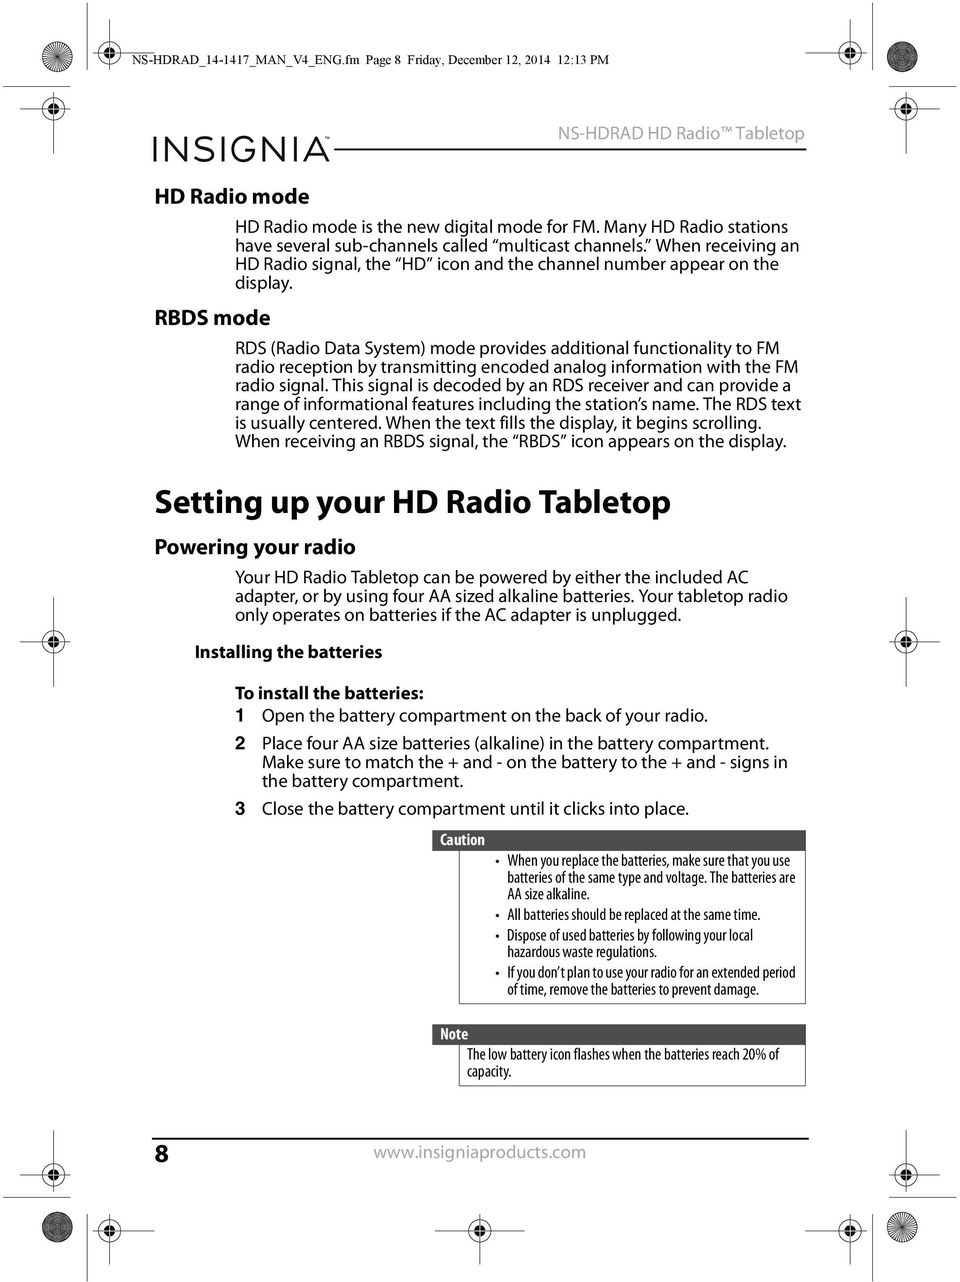 RDS (Radio Data System) mode provides additional functionality to FM radio reception by transmitting encoded analog information with the FM radio signal.